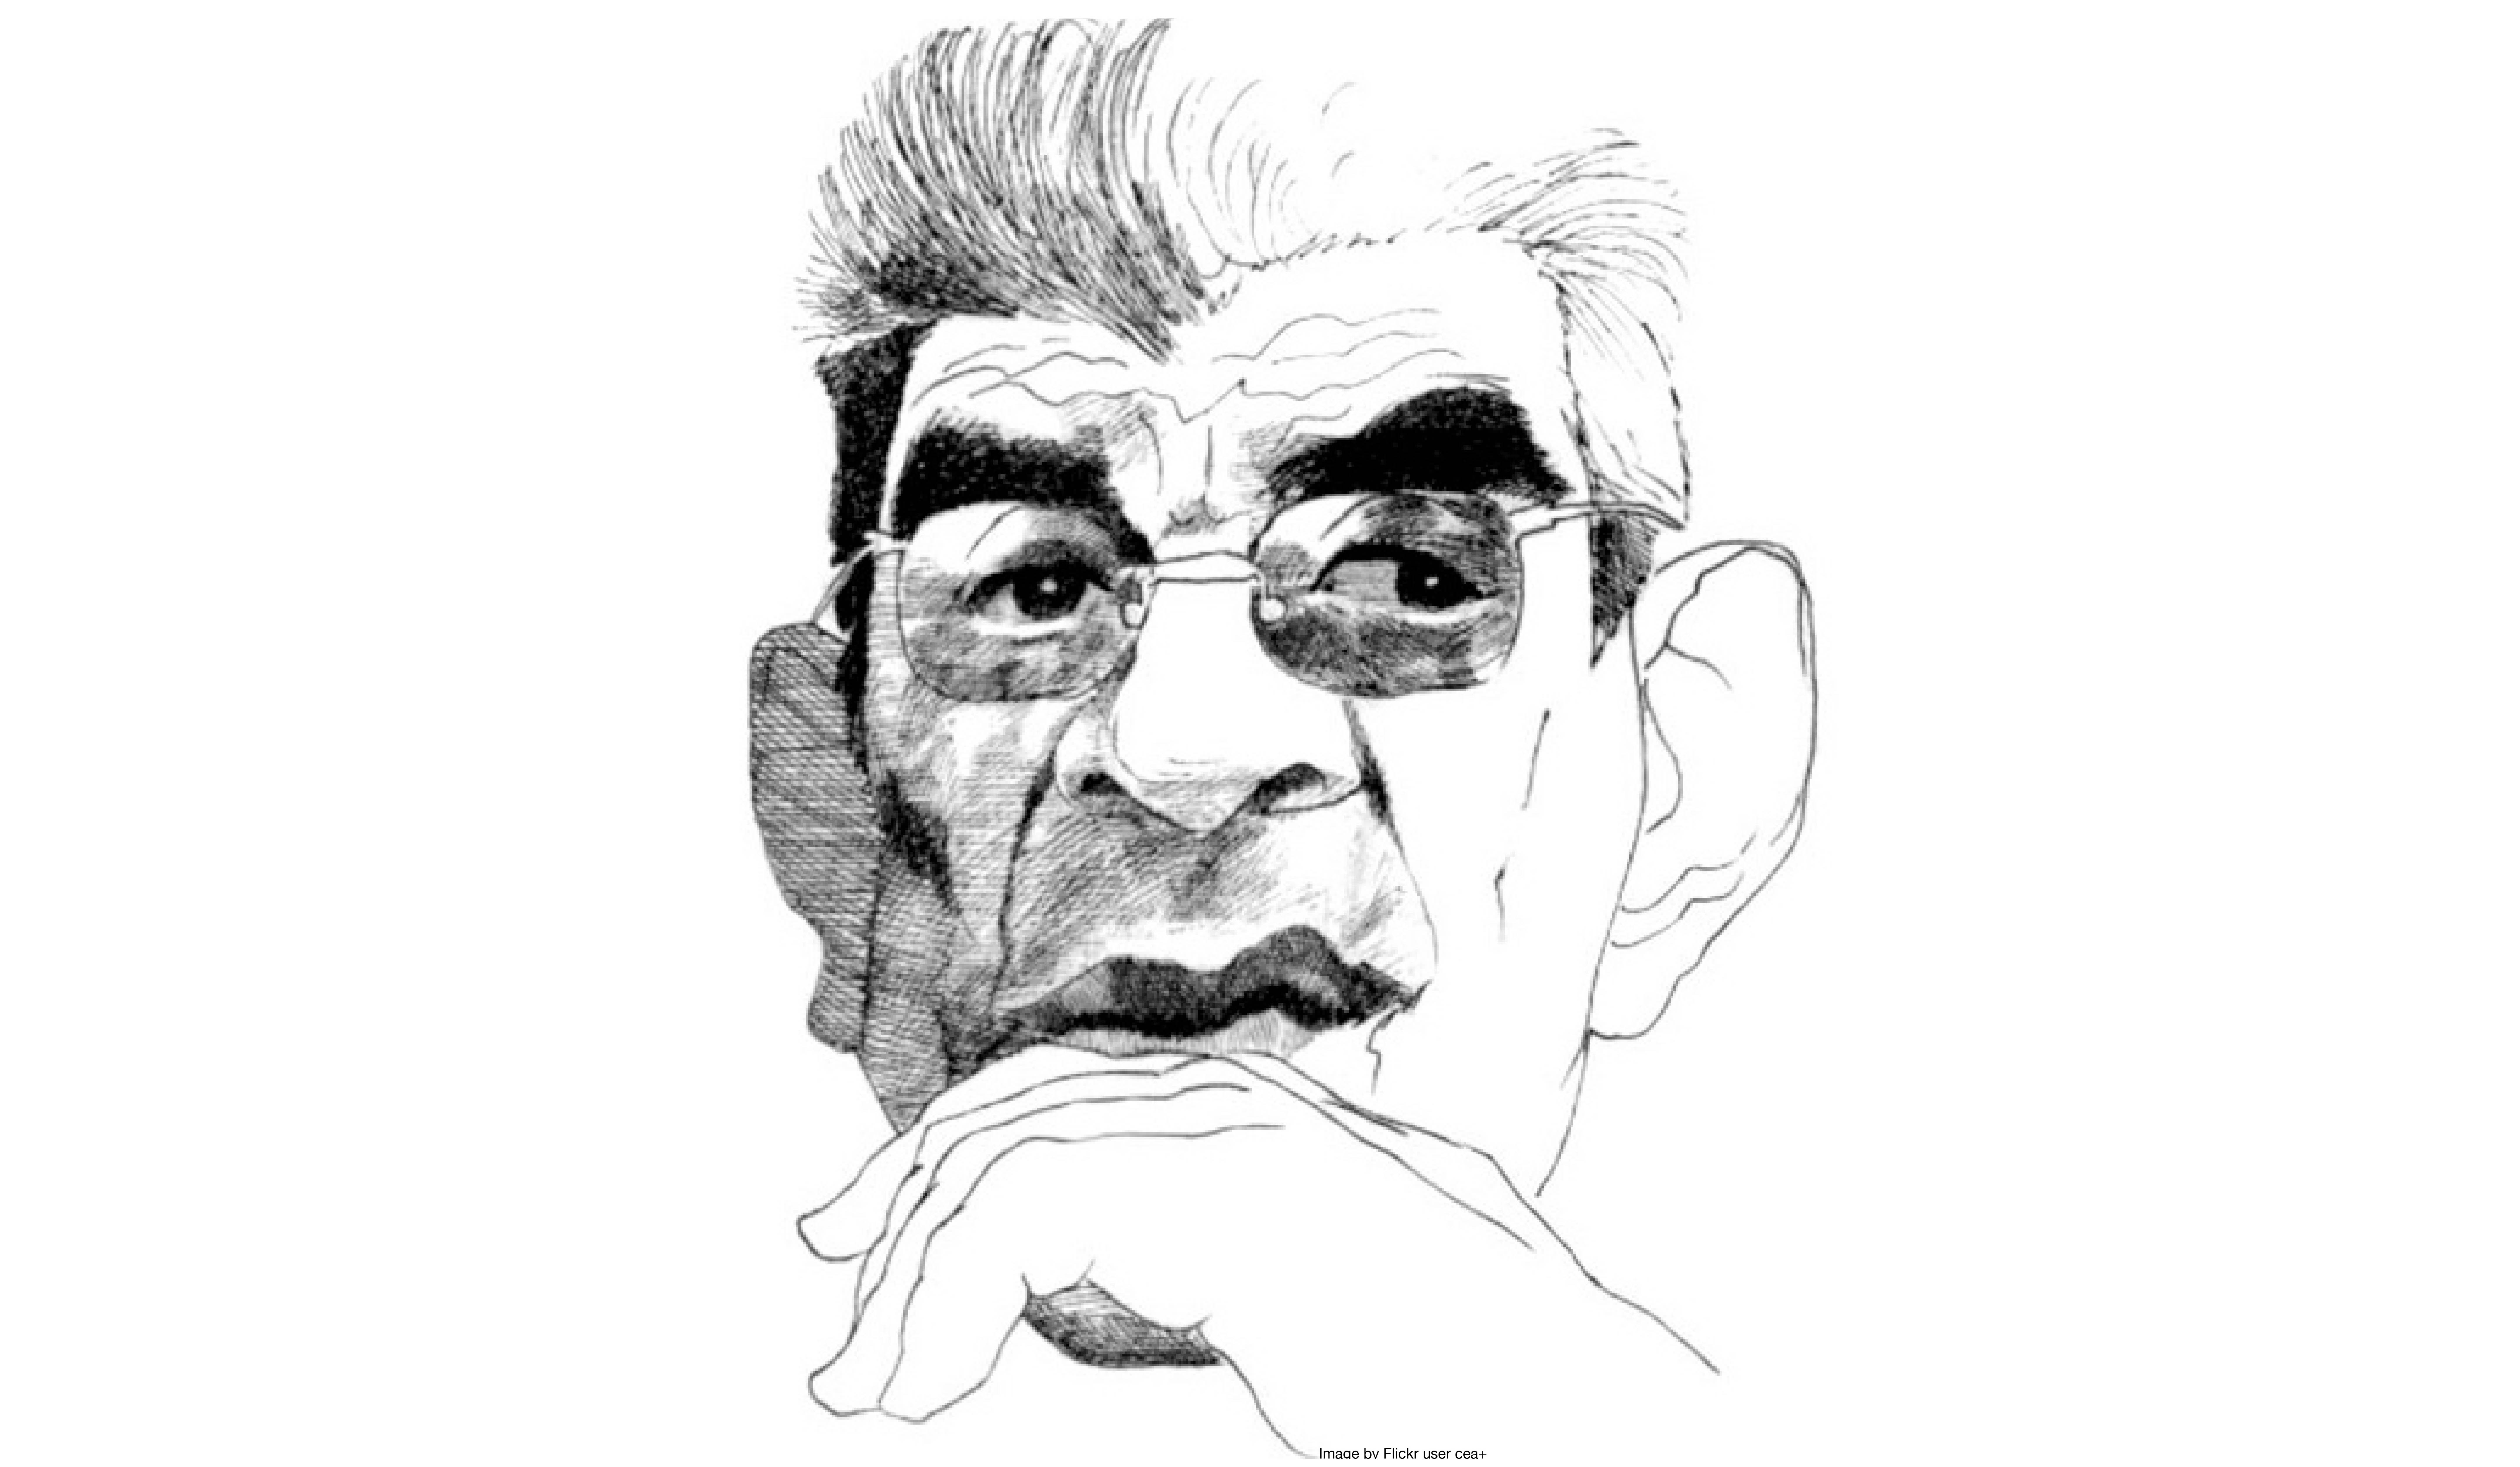 Jacques Lacan drawing (rights free by Flickr user cea+)